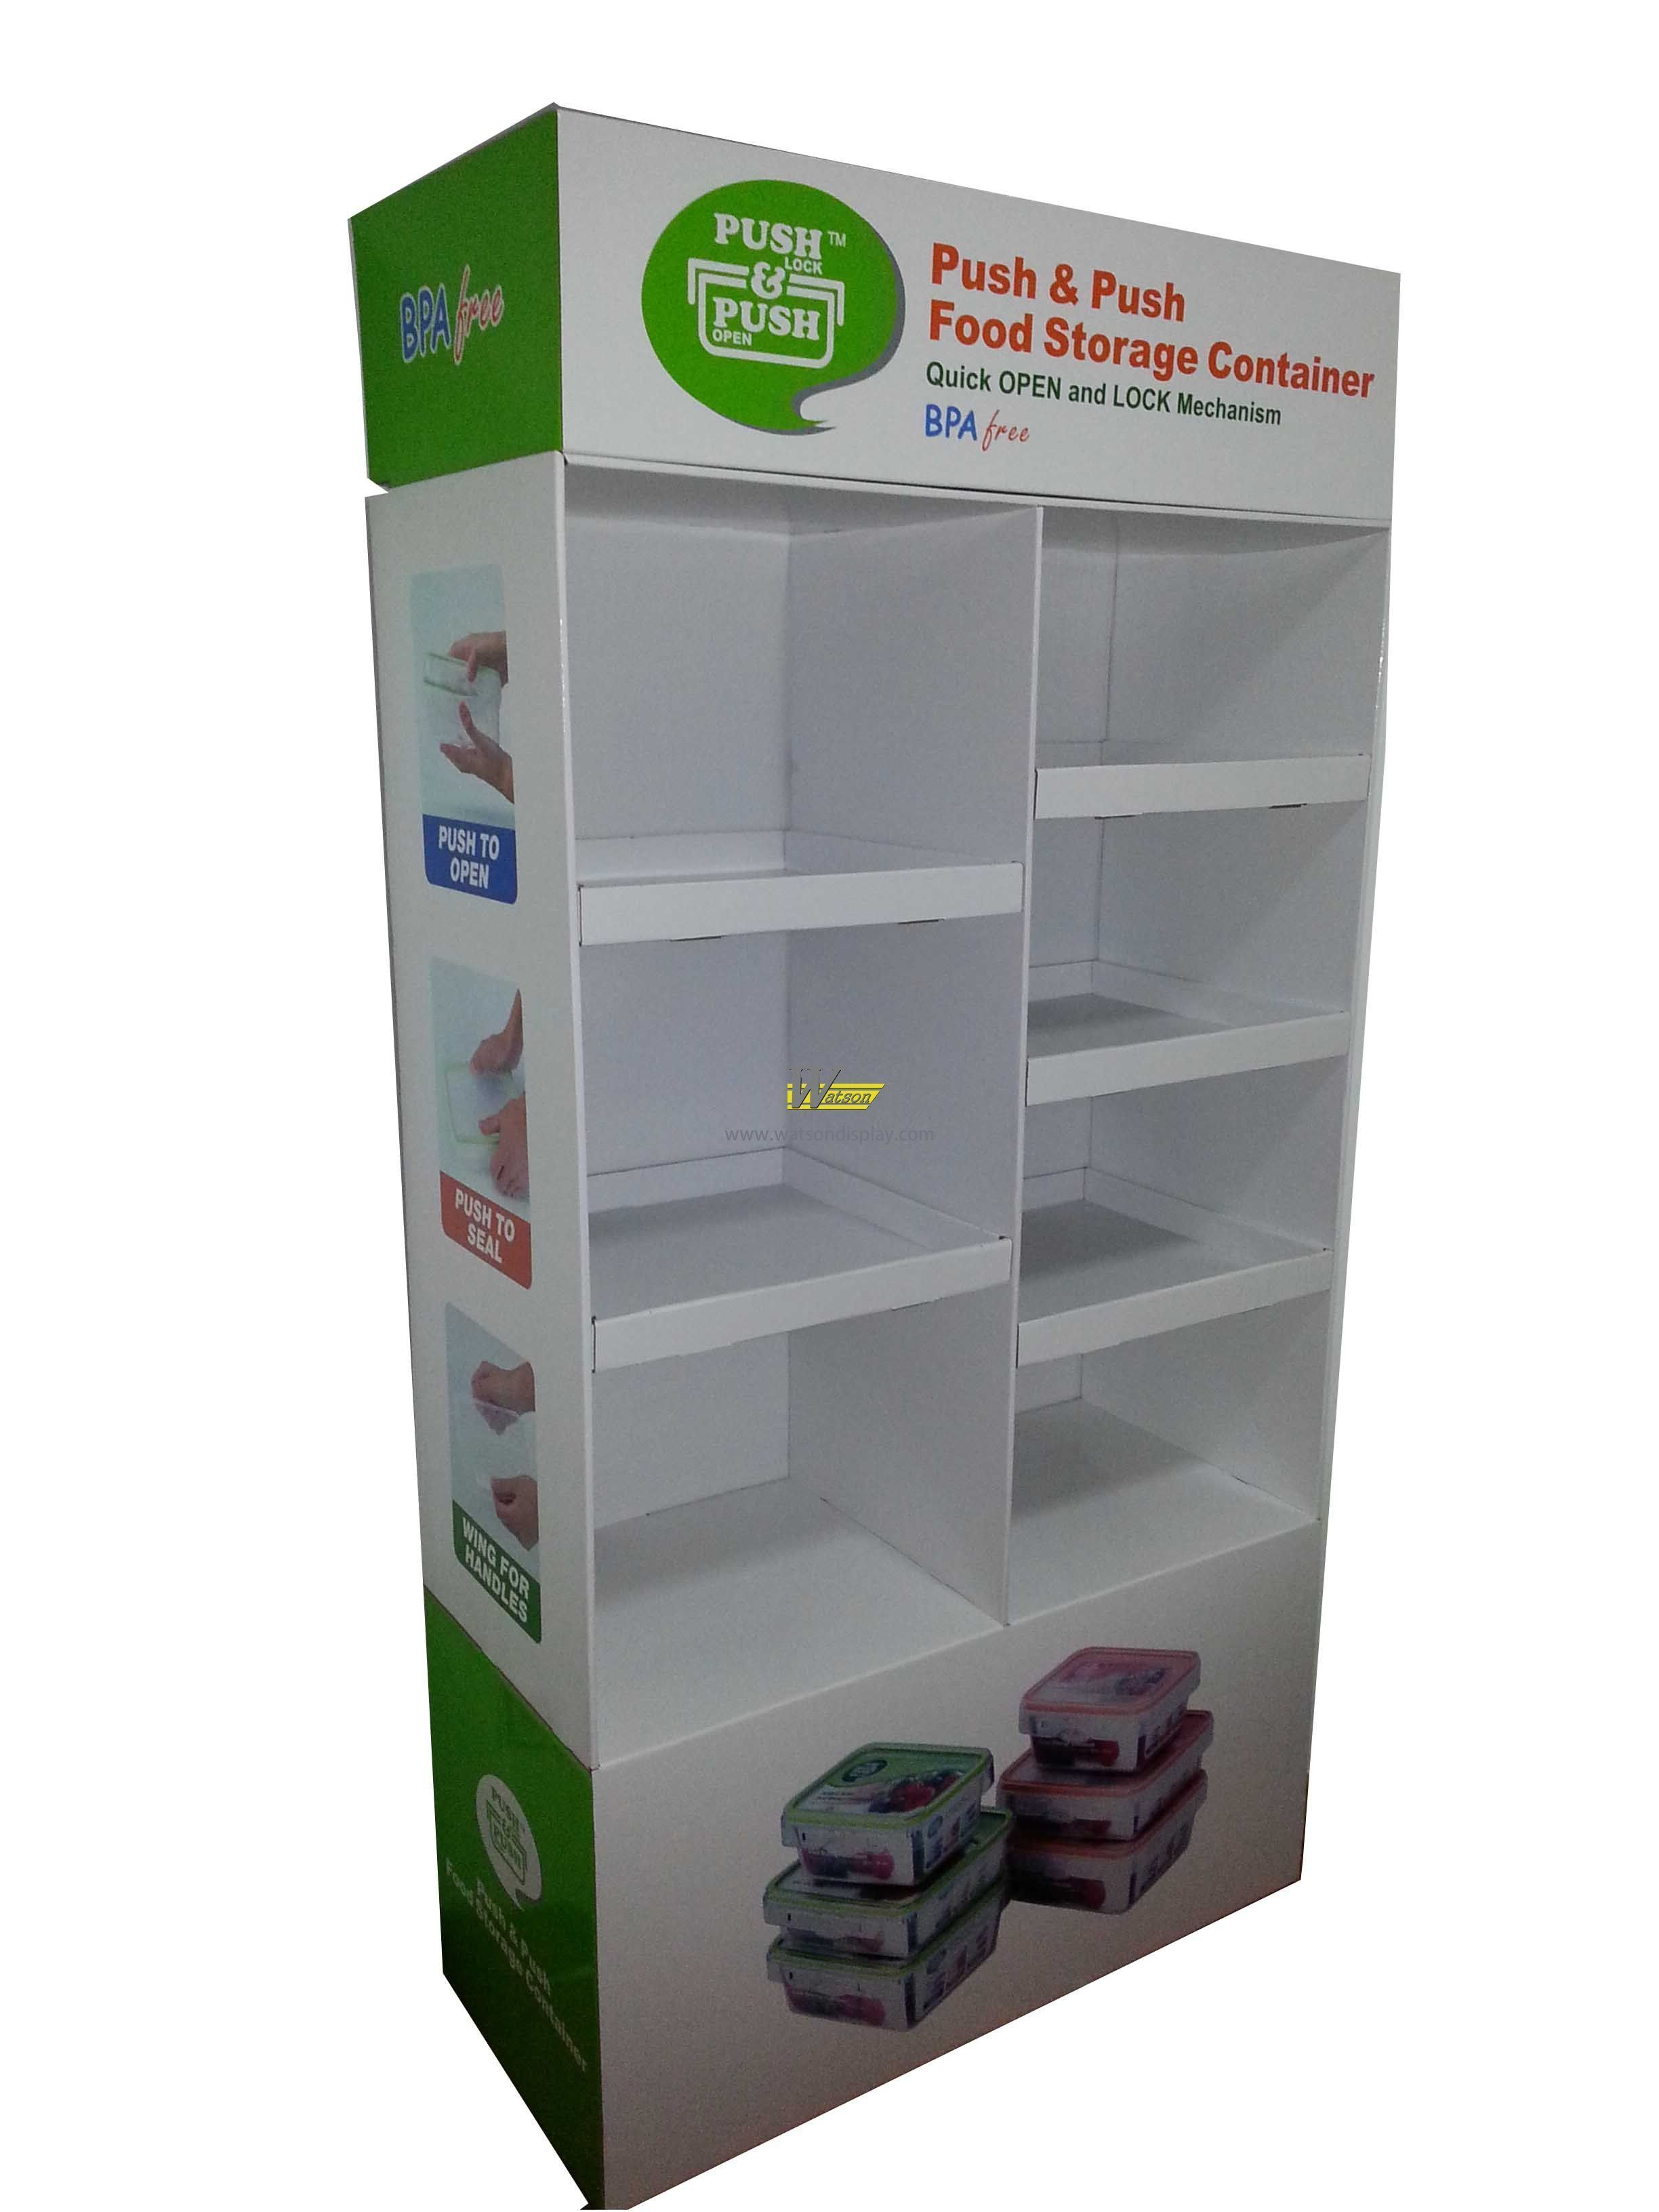 Hot sales custom corrugated compartment display stand for food storage container